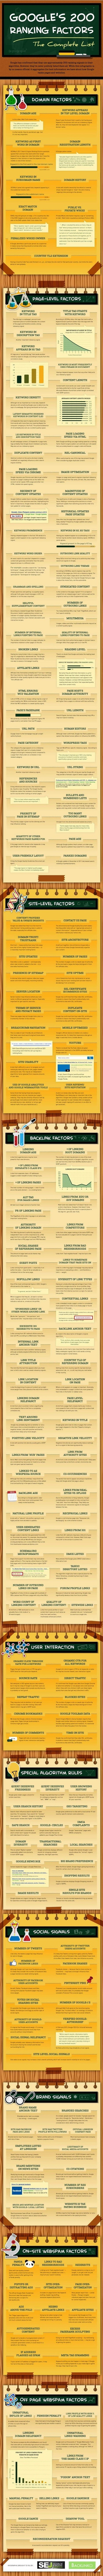 Google's 200 ranking factors: The complete list [infographic] | Social Marketing | Scoop.it